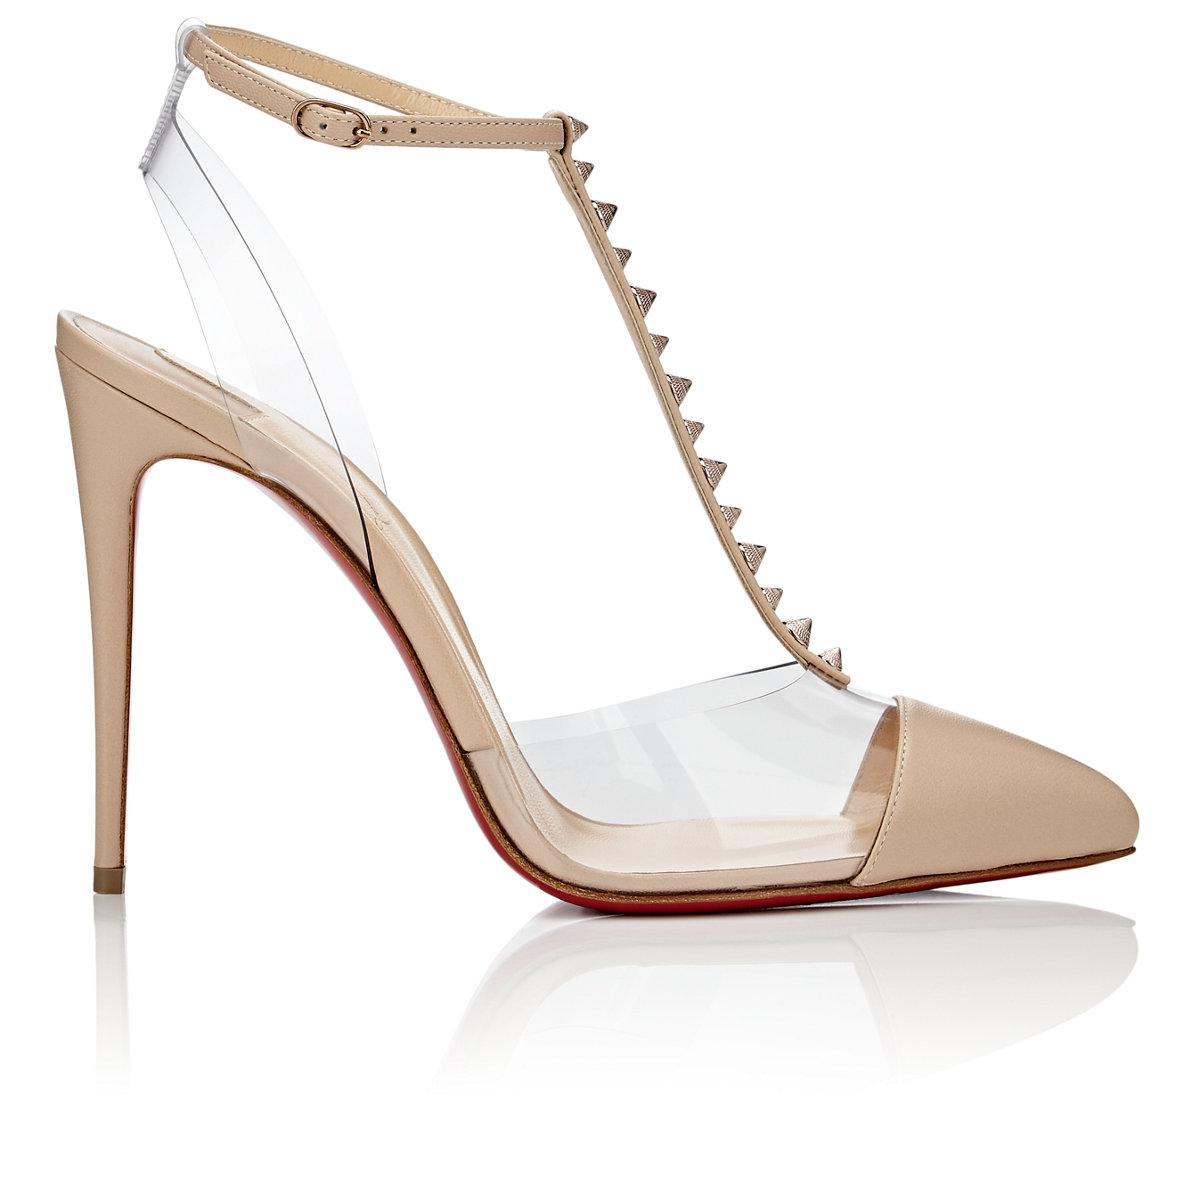 ac962d3dad55 Lyst - Christian Louboutin Nosy Spikes Leather   Pvc Pumps in White